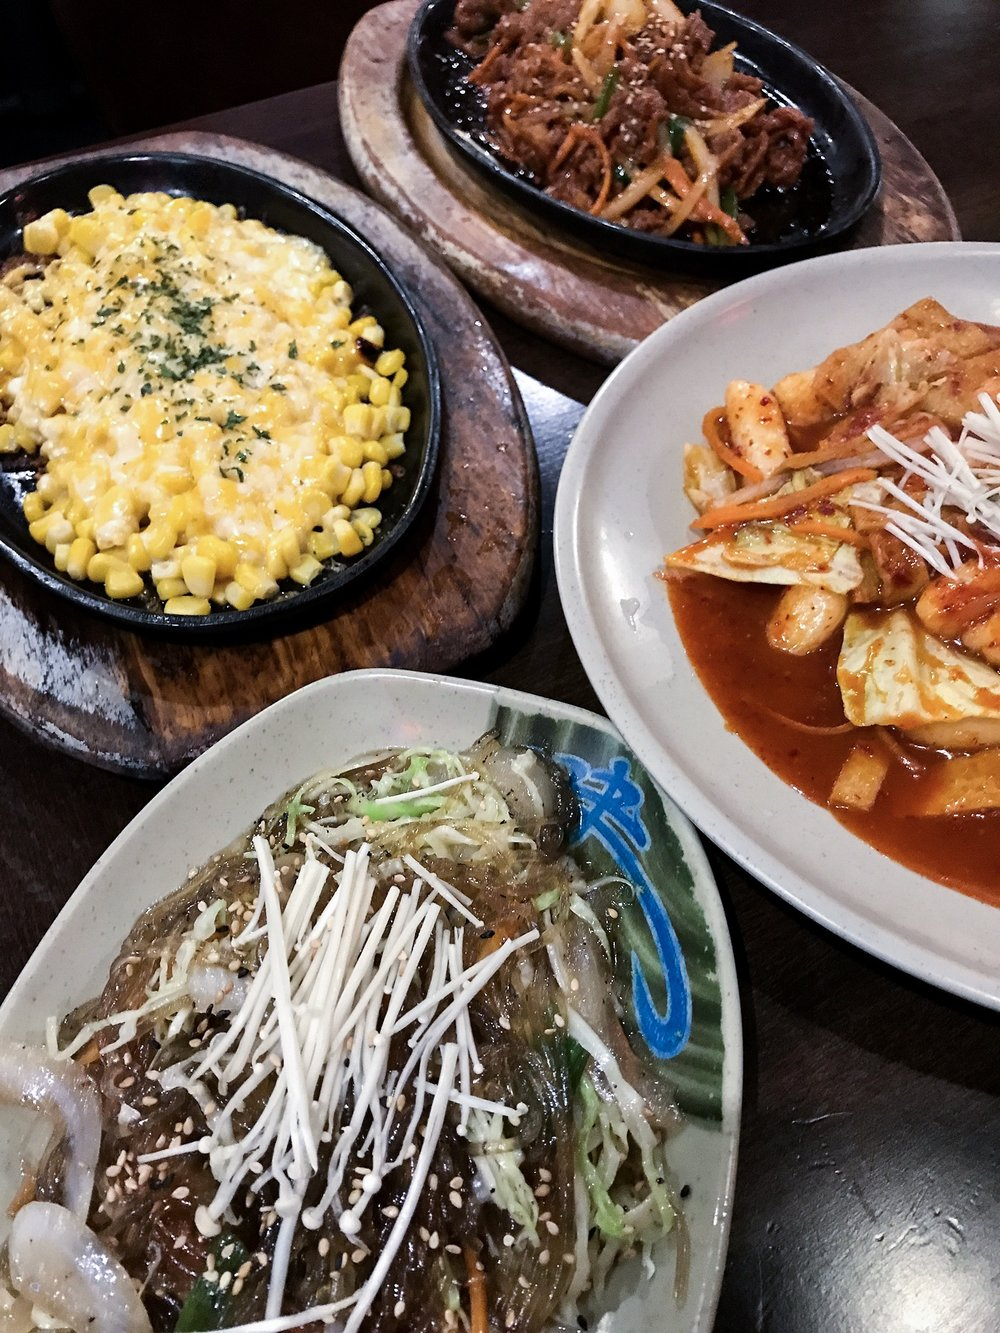 Cheesy corn, japchae, spicy pork, and tteokbokki at Cocobang.